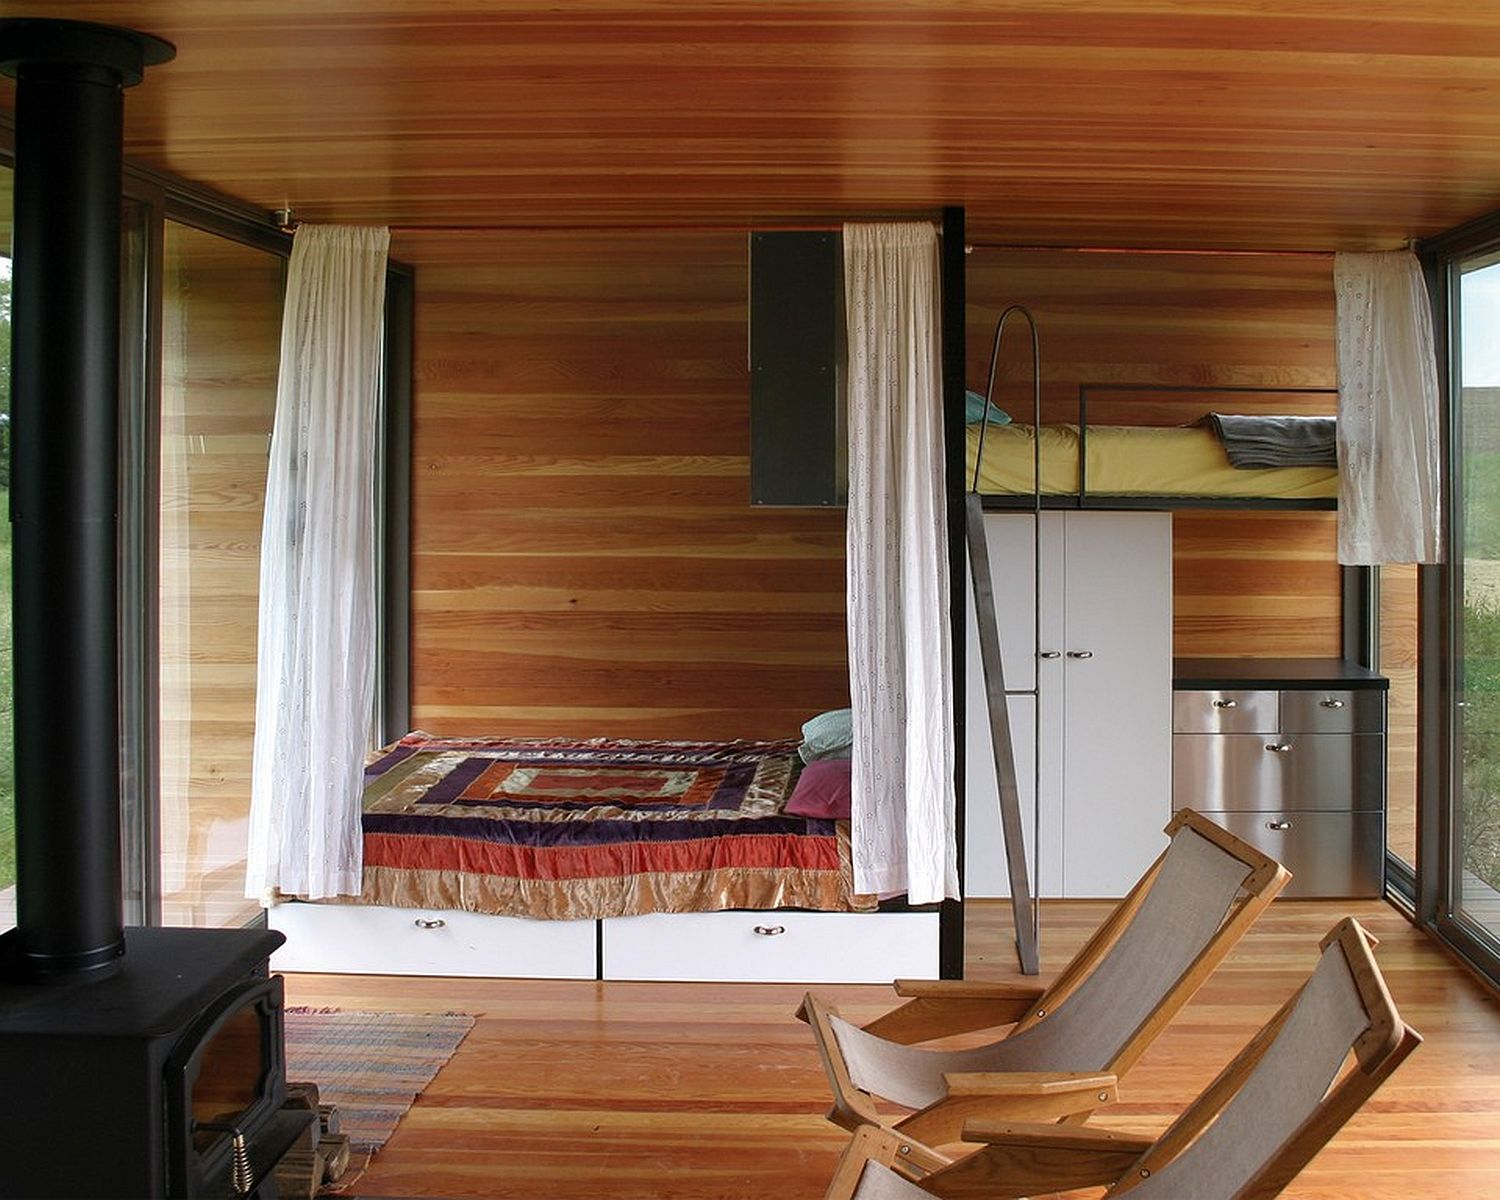 Gallery the arado weehouse a modern prefab cabin alchemy architects small house bliss - Interior for small house ...